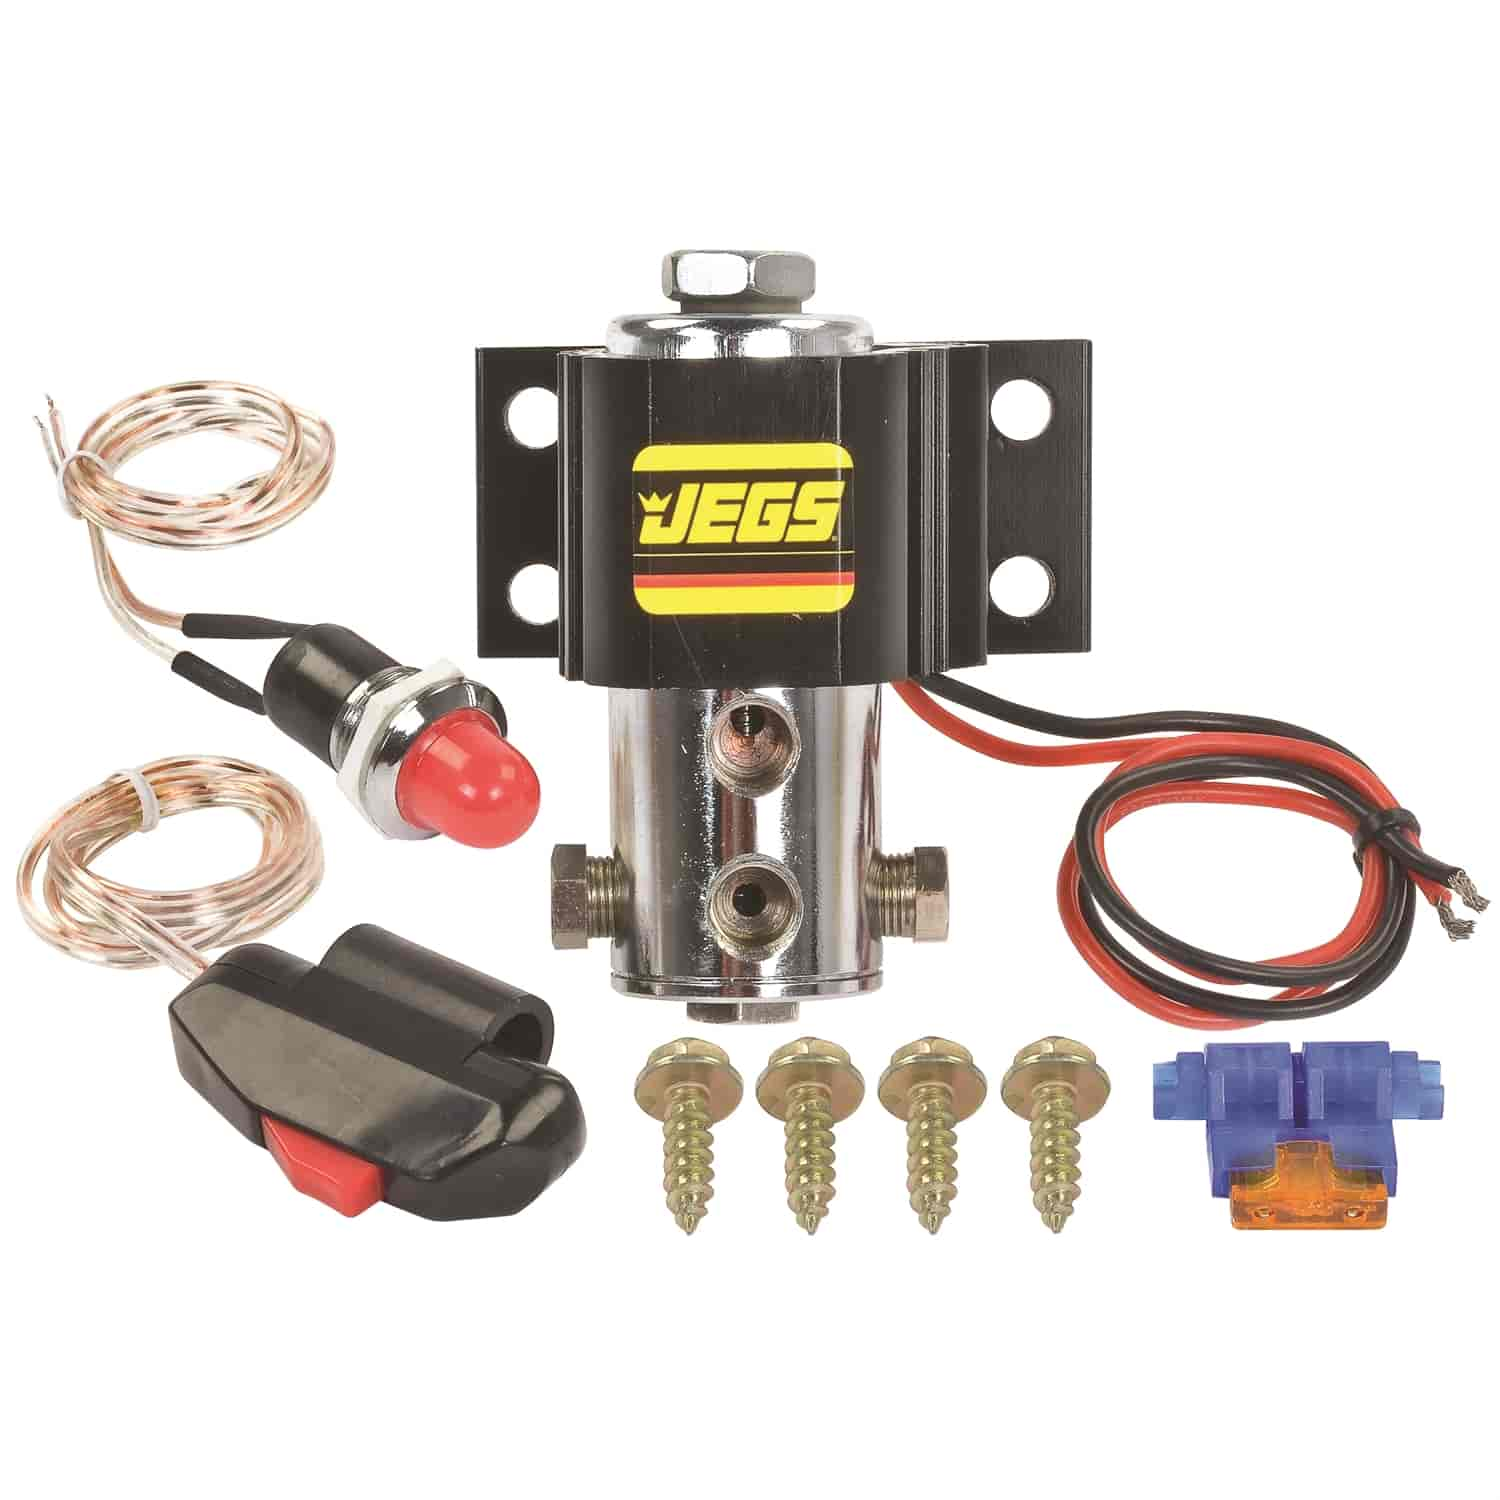 JEGS Performance Products 63003 - JEGS Stage Control II